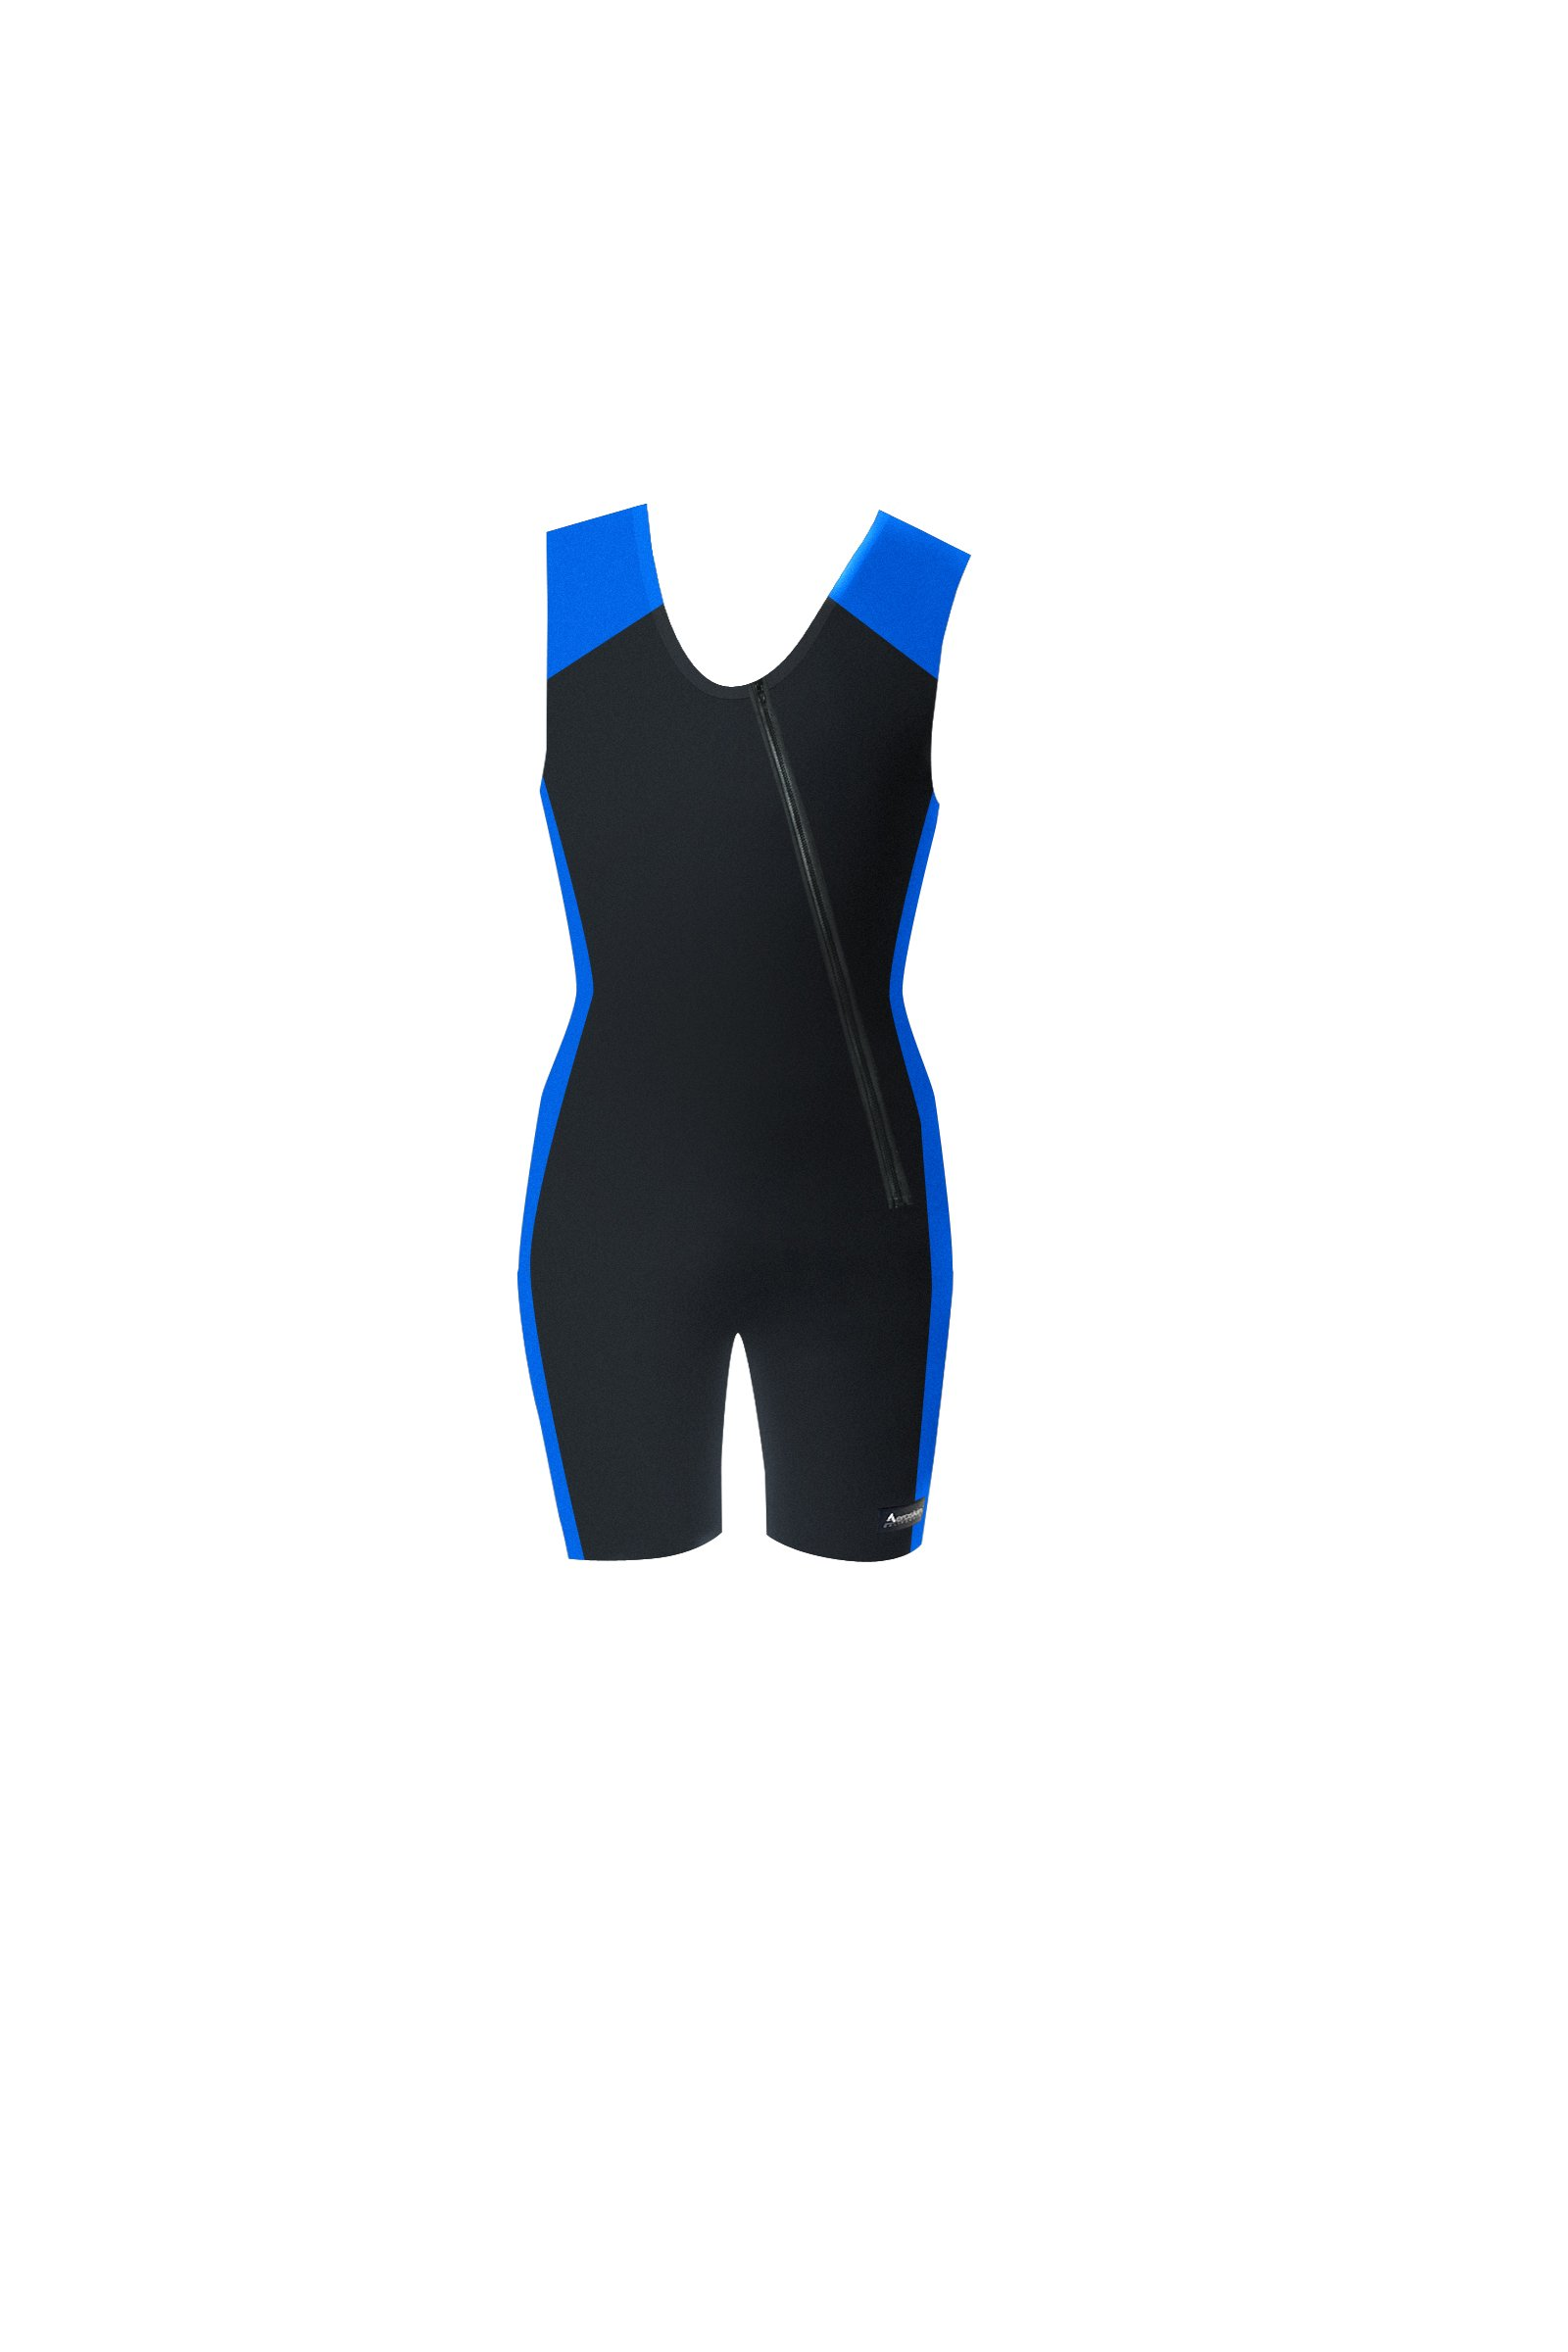 Aeroskin 1mm Neoprene Sleeveless Shorty with Slant Front Zip and Spine/Kidney Pad (Black/Blue, XXX-Large)